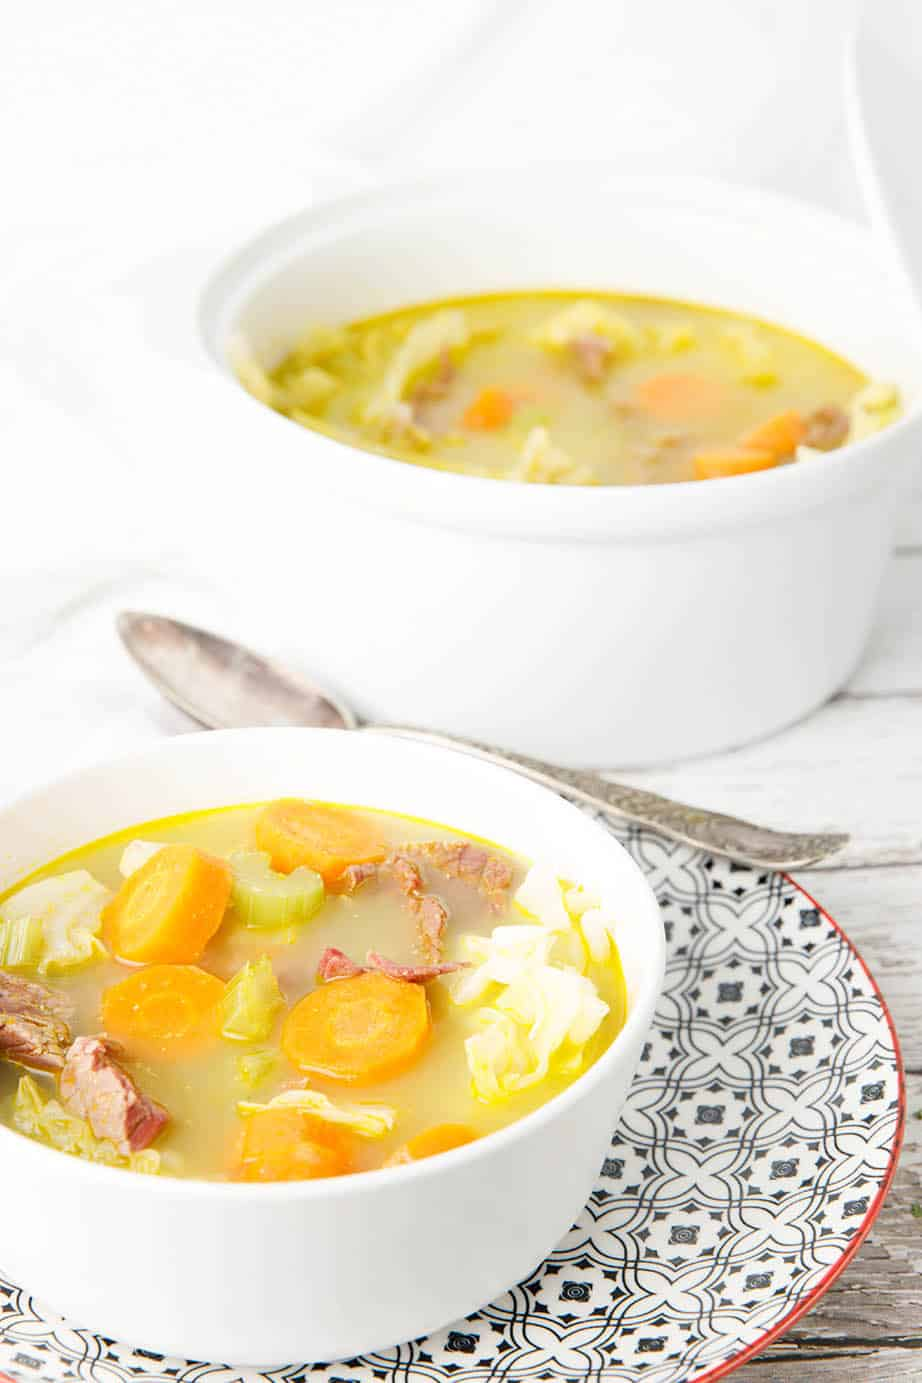 Corned beef and cabbage soup is a typical old-fashioned dish my nan used to make in winter. Although the recipe has been modernised for the Thermomix I have given instructions for the stovetop too. still brings happy food memories. #CornedBeefSoup #CornedBeef #Keto #Thermomix